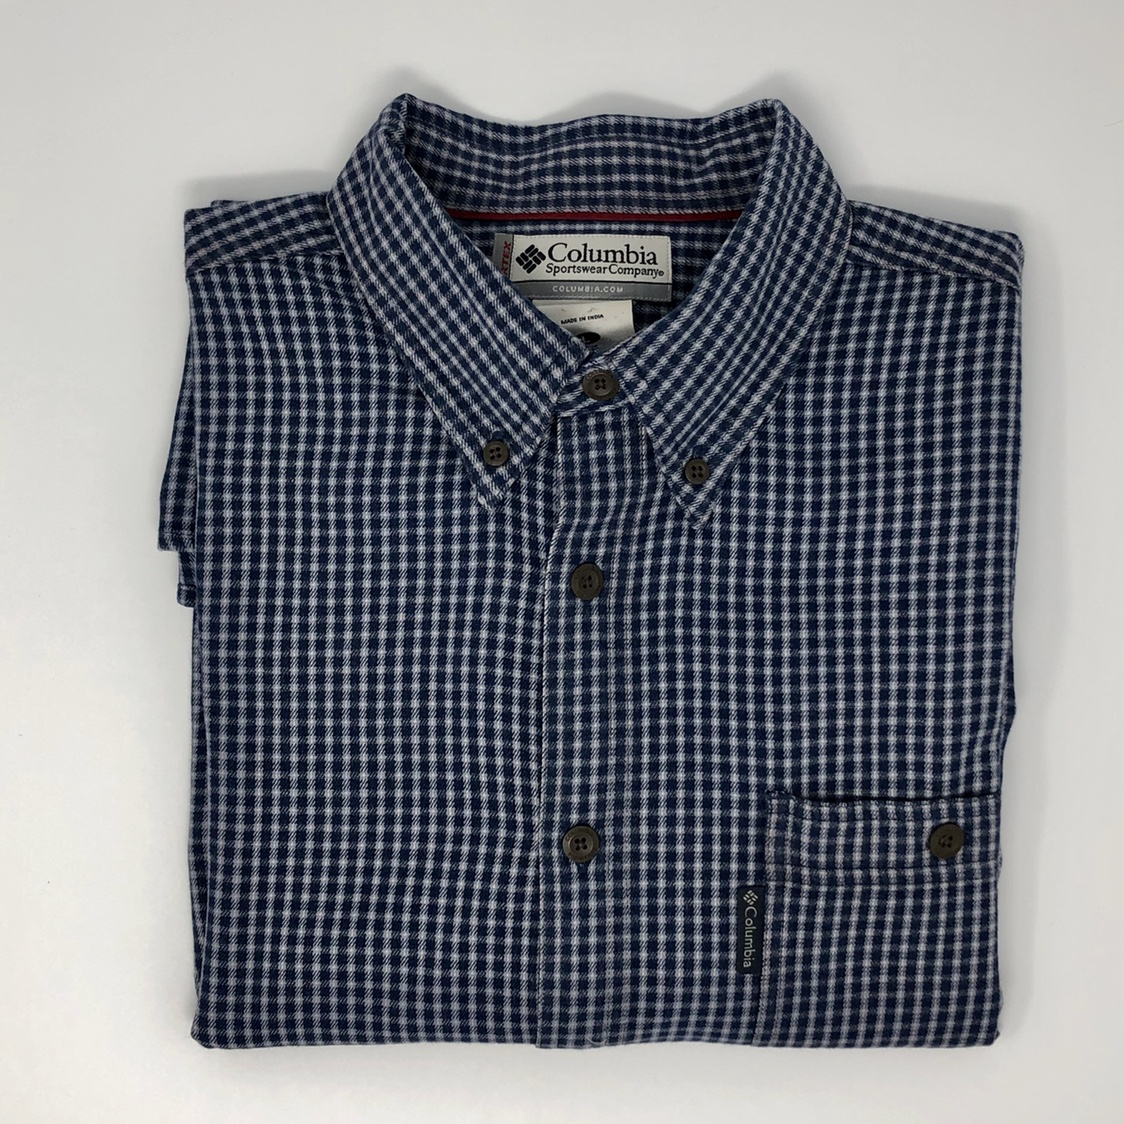 Product Image 1 - Columbia Sportswear Company Flannel Button